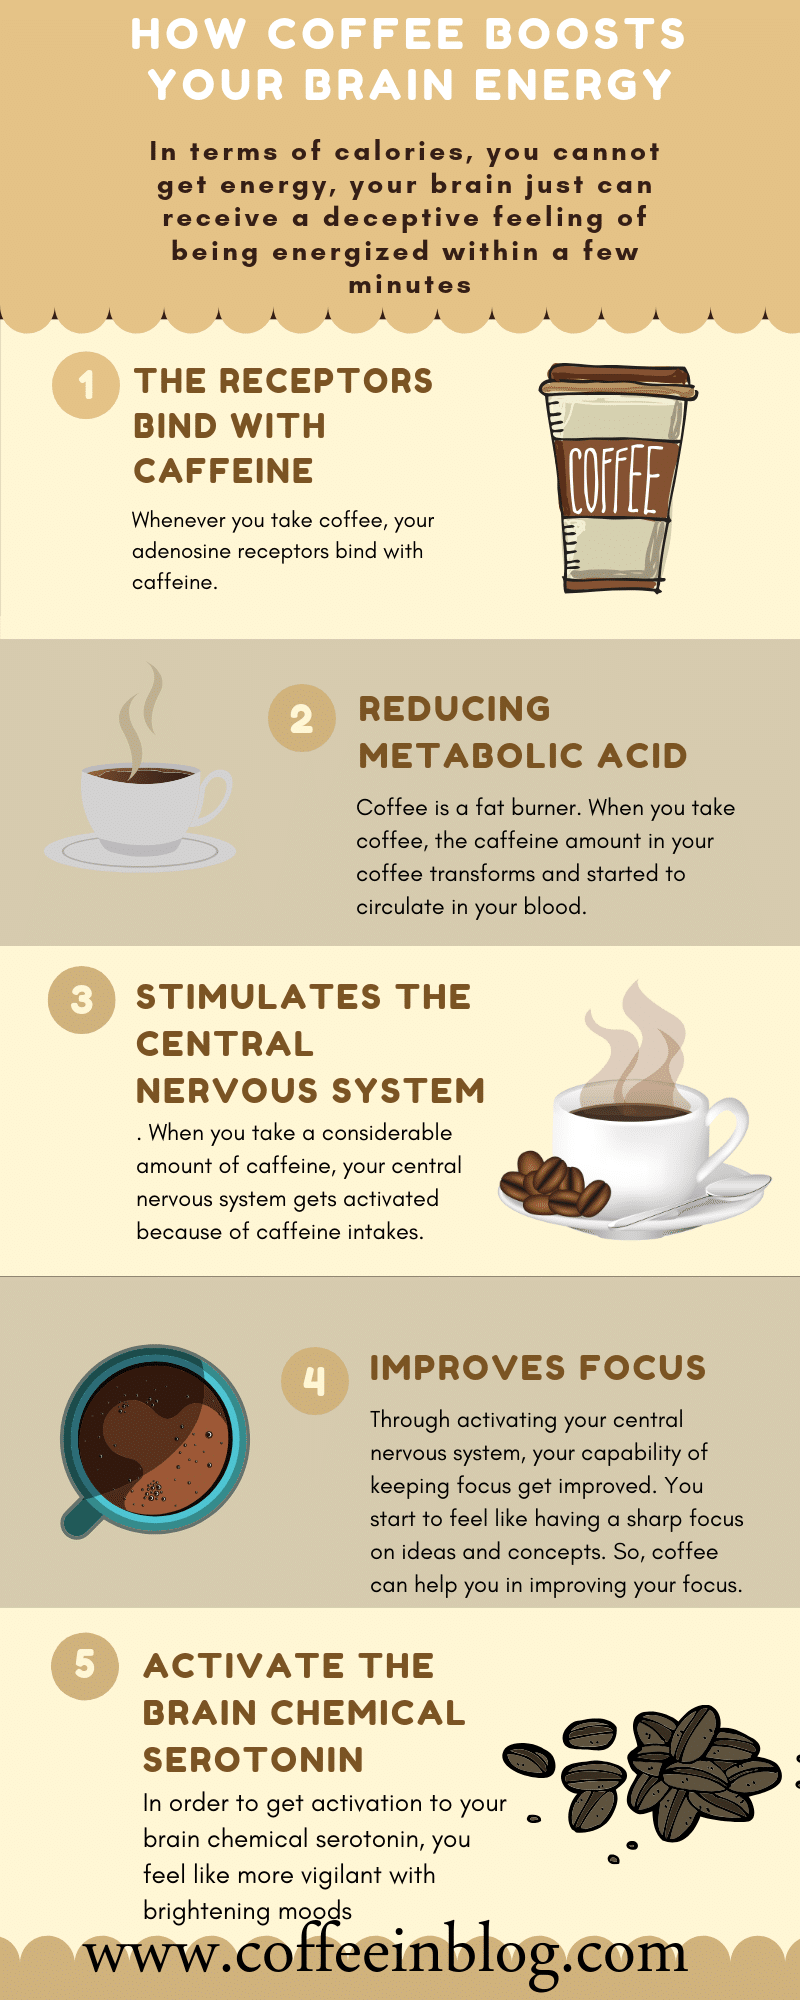 How Coffee Boosts your Brain Energy.png